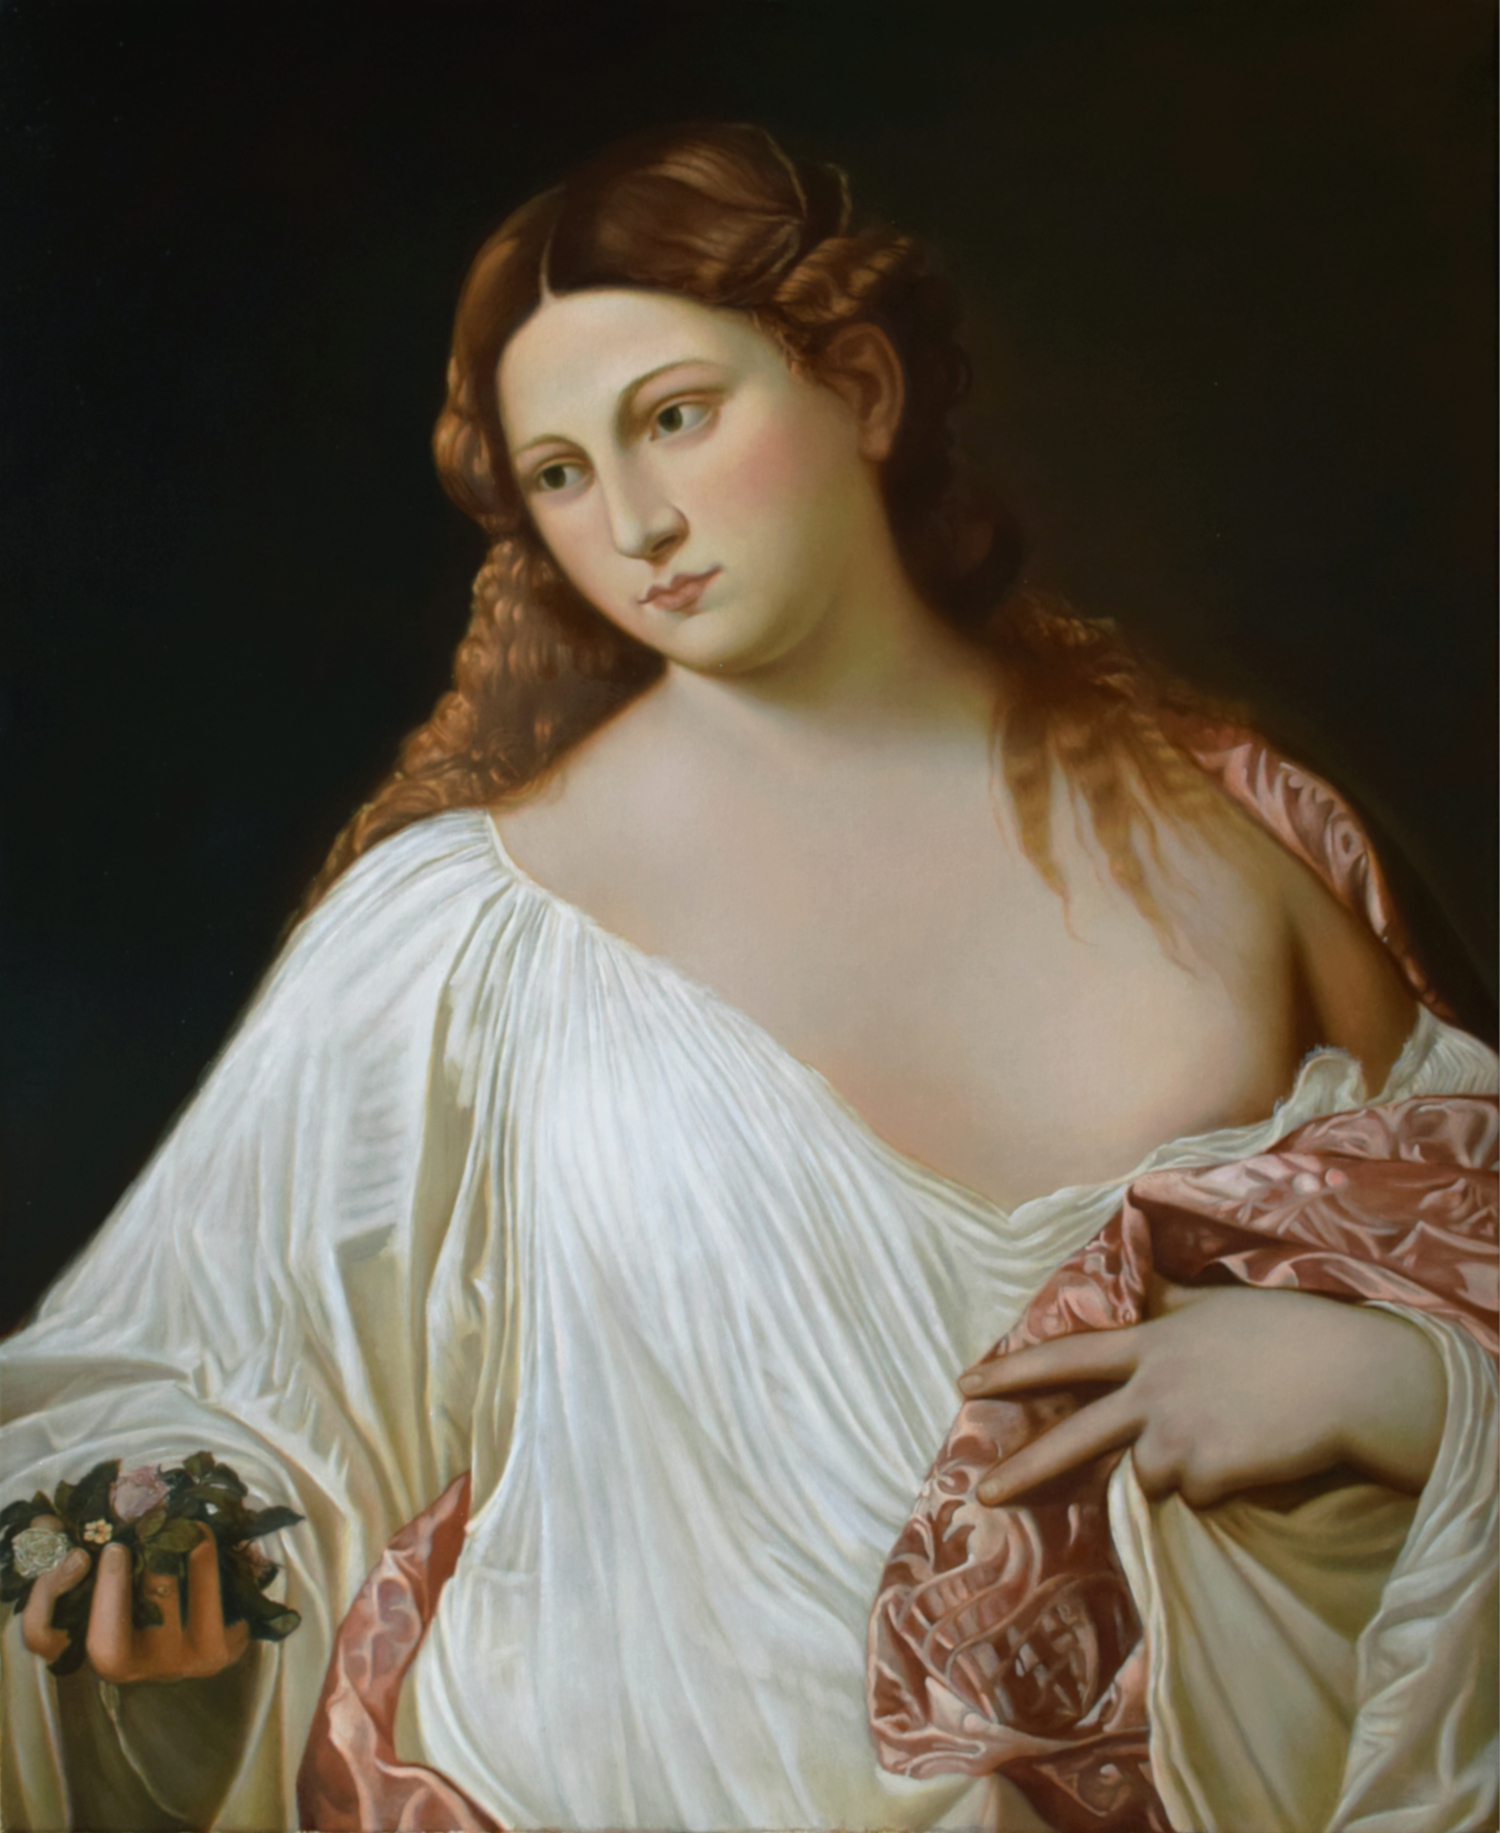 Copy of the painting Flora (1515-1517) by Tiziano Vecellio, oil on canvas, 80 x 64 cm, 2019